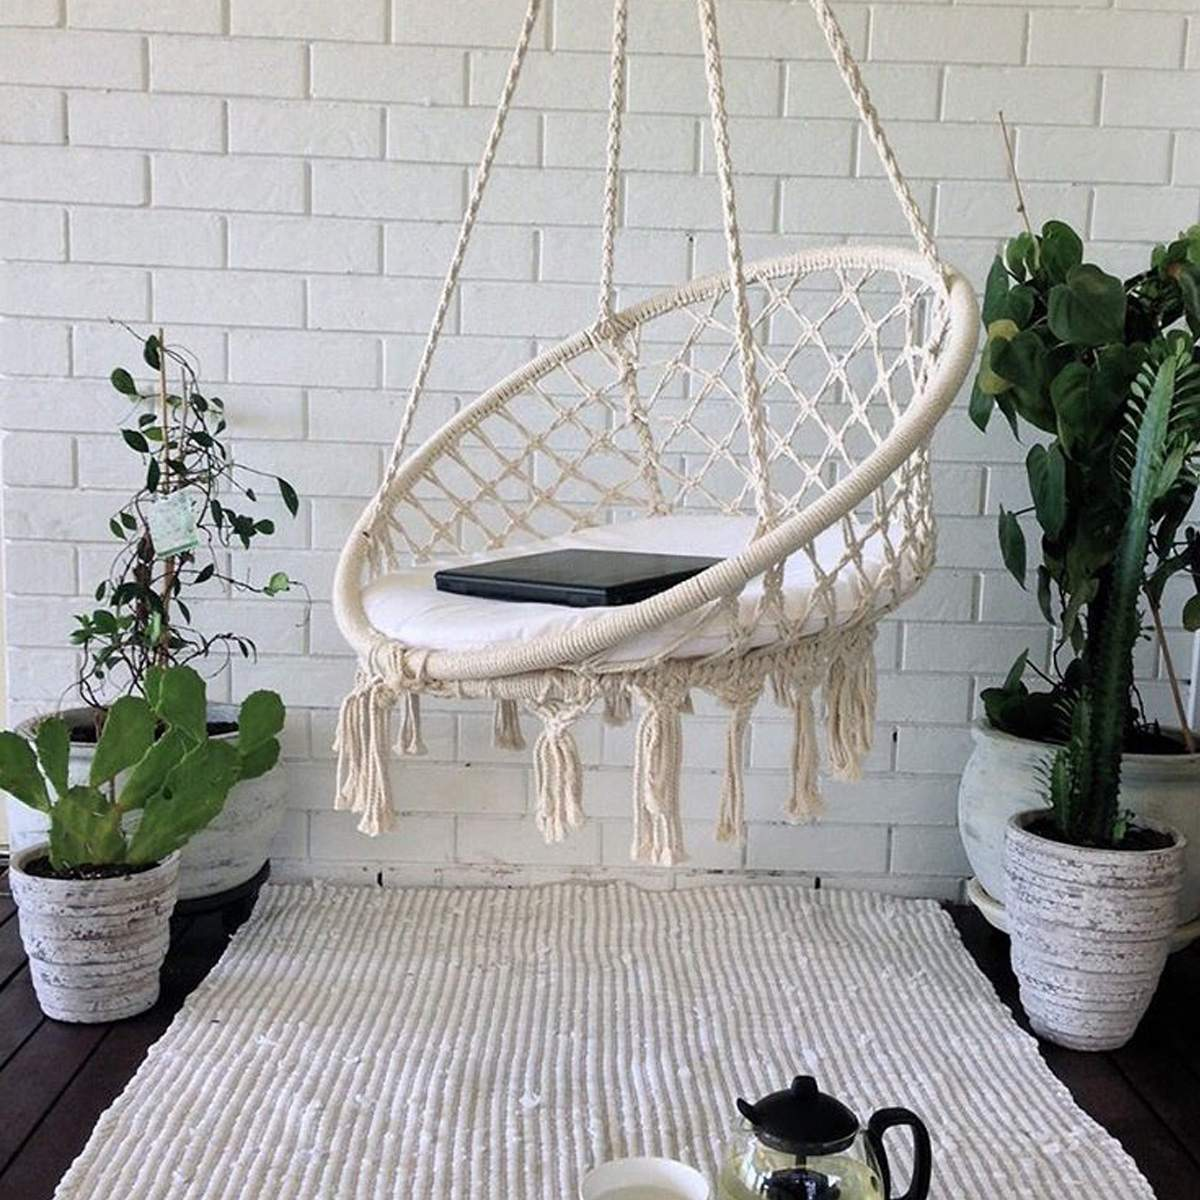 Hanging Outdoor Chairs Round Hammock Swing Hanging Chair Outdoor Indoor Furniture Hammock Chair For Garden Dormitory Child Adult With Tools